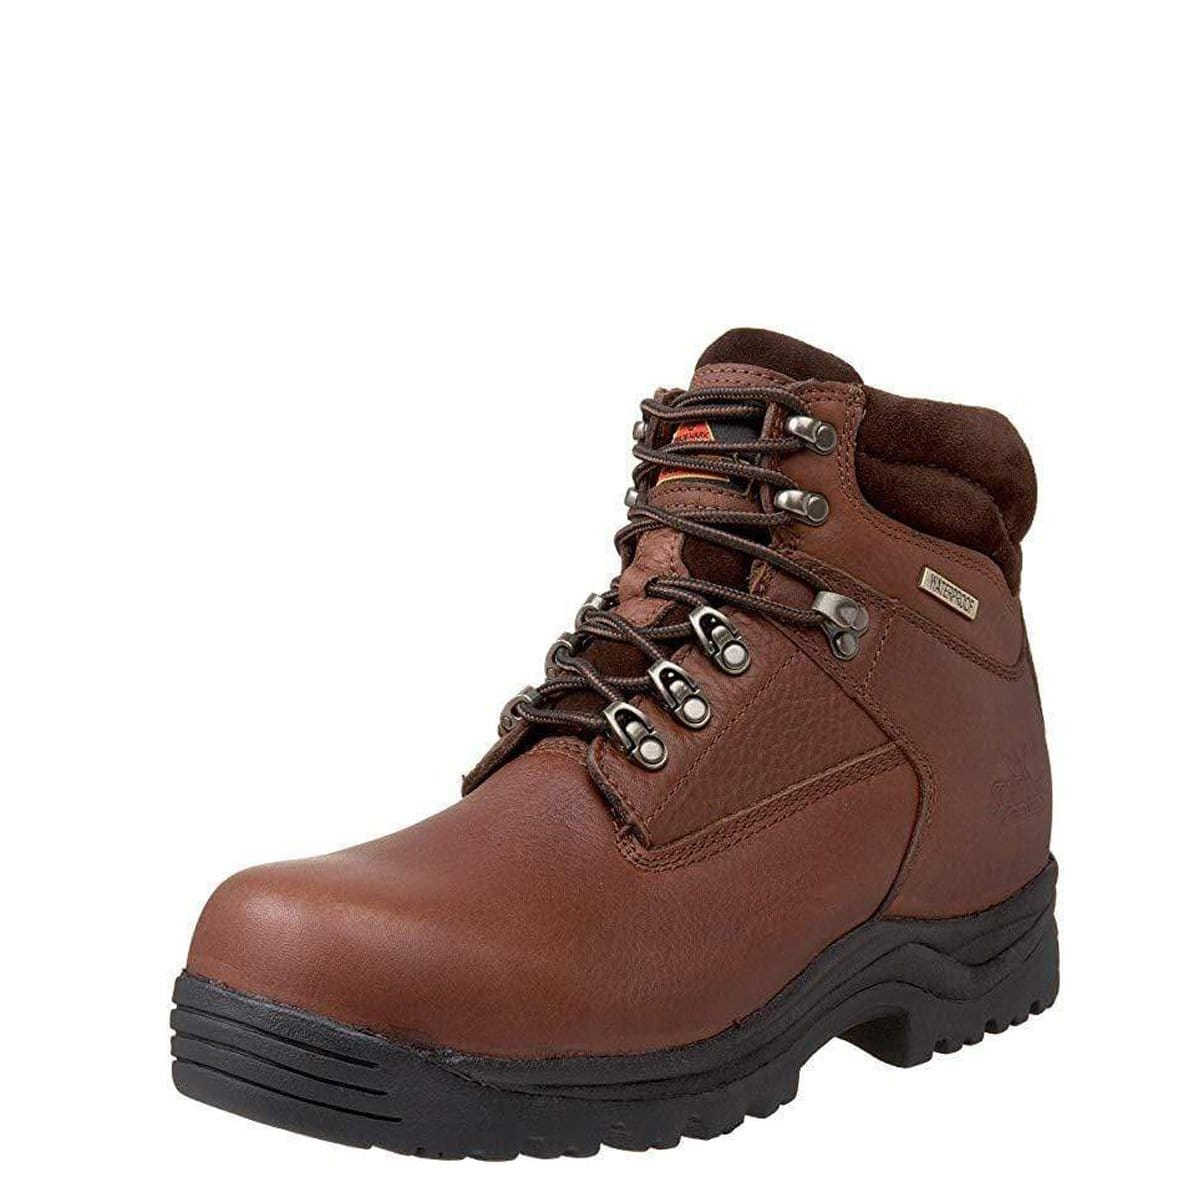 Thorogood Waterproof 6in Composite Oblique Toe Hiker Boots 804-4900